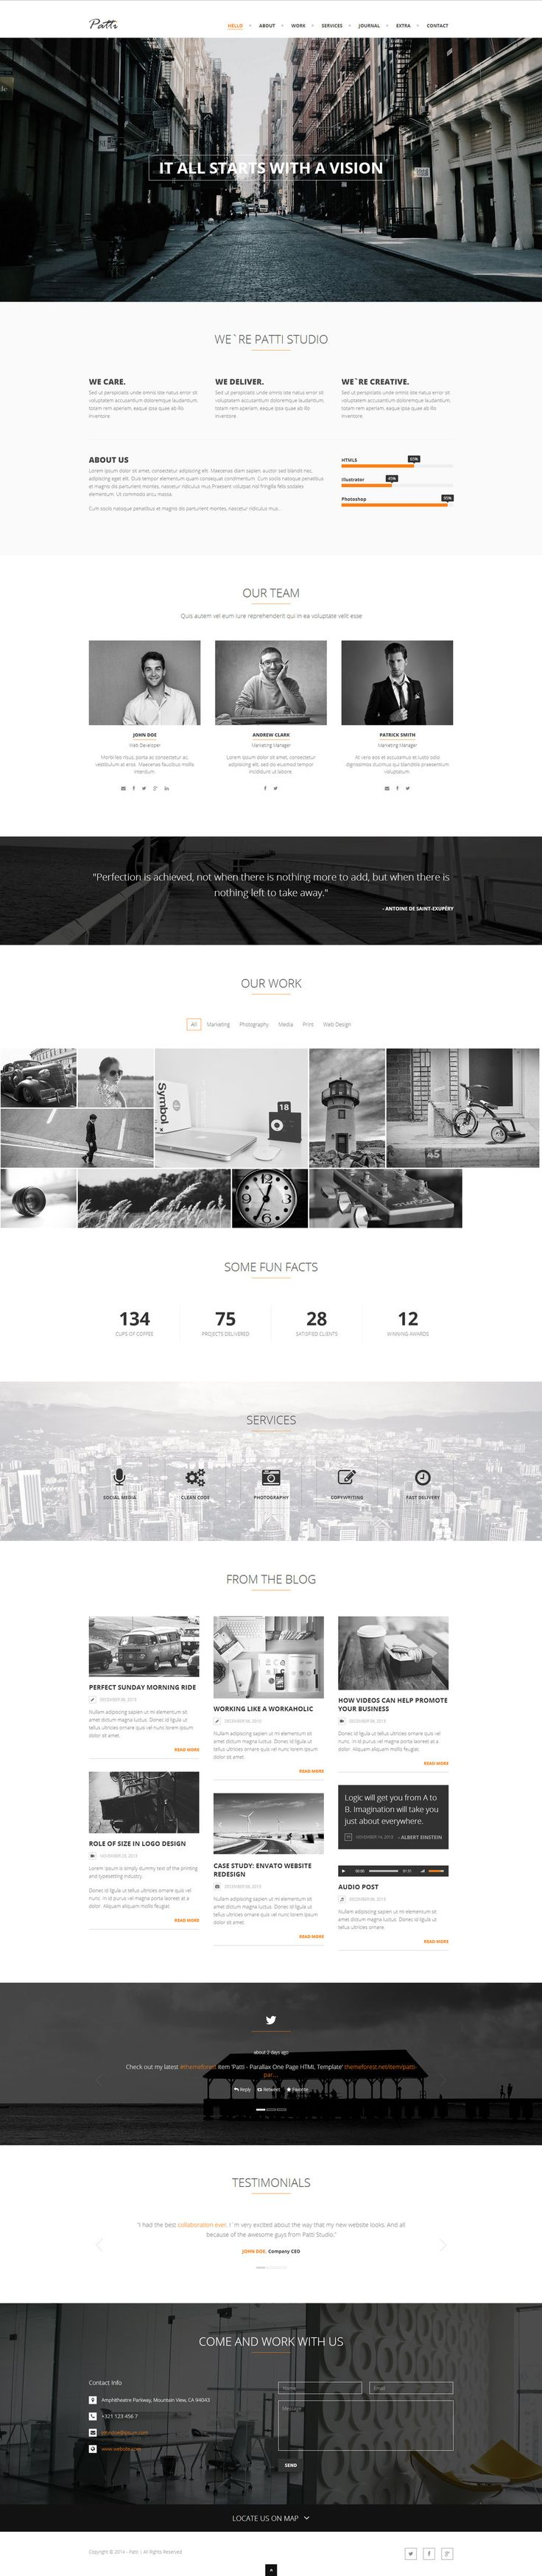 Patti - Parallax One Page HTML Template by DarkStaLkeRR.deviantart.com on @deviantART